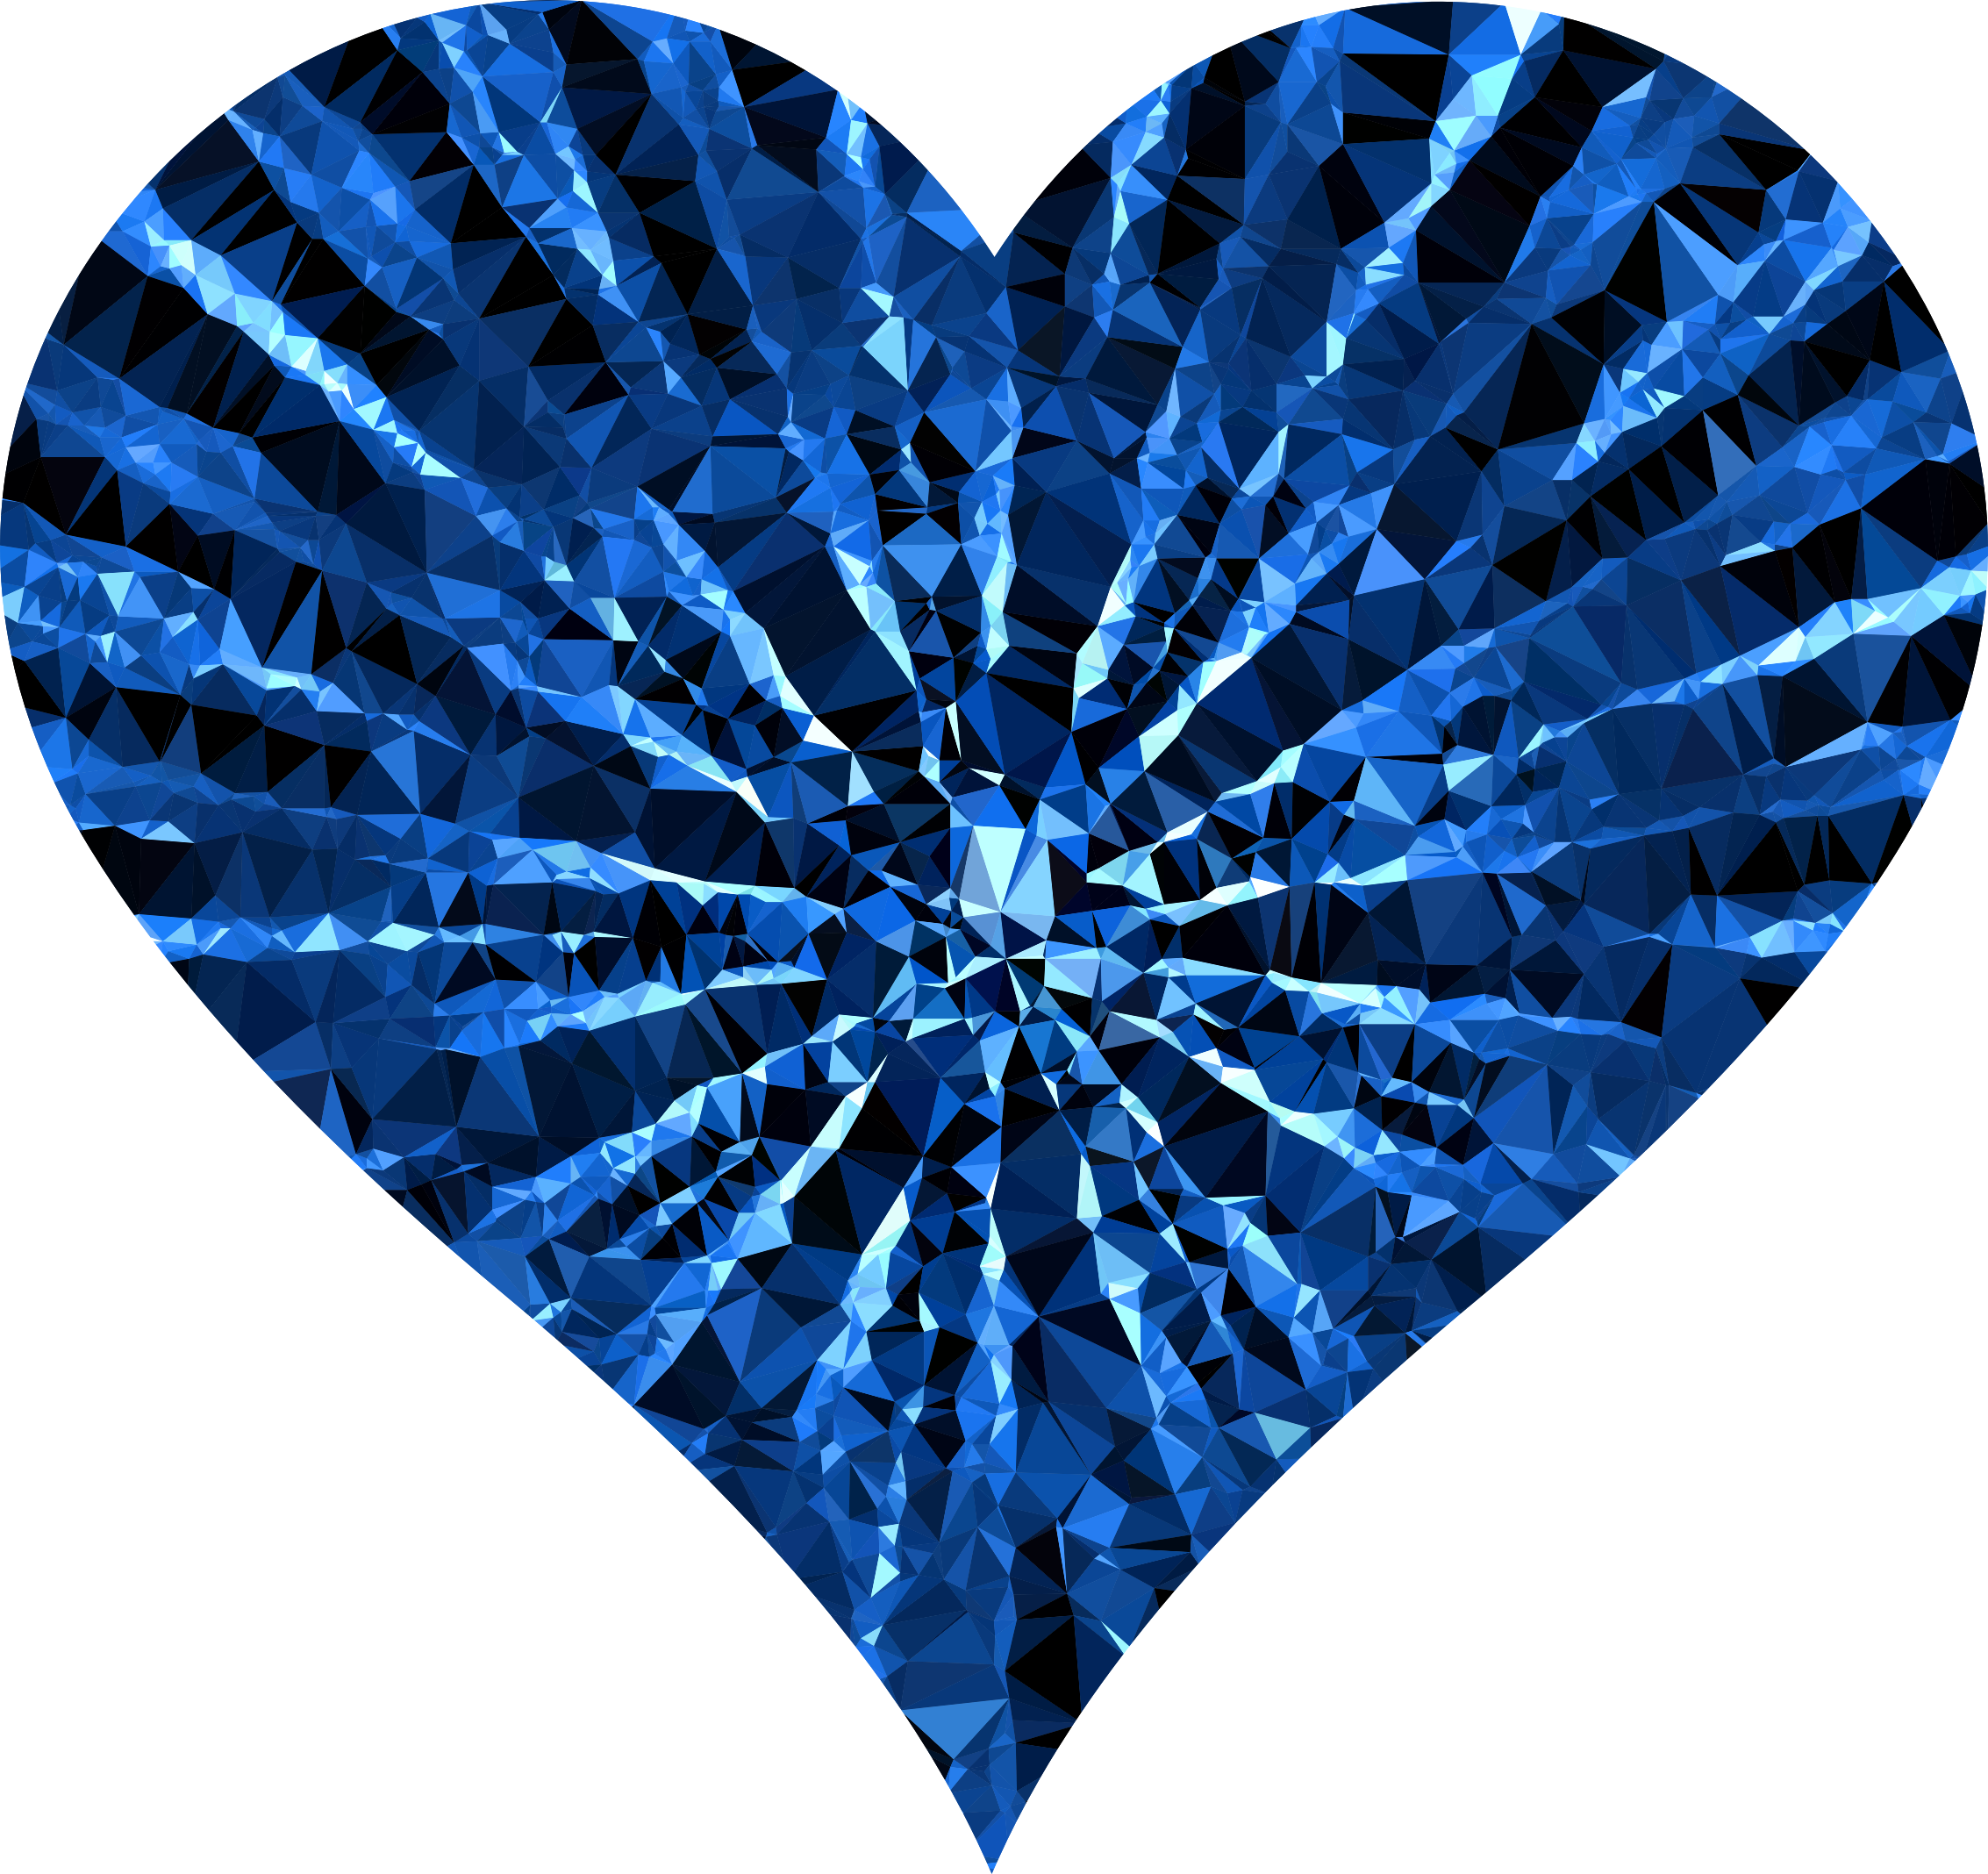 Royal blue heart clipart vector Clipart - Low Poly Shattered Heart Blue vector